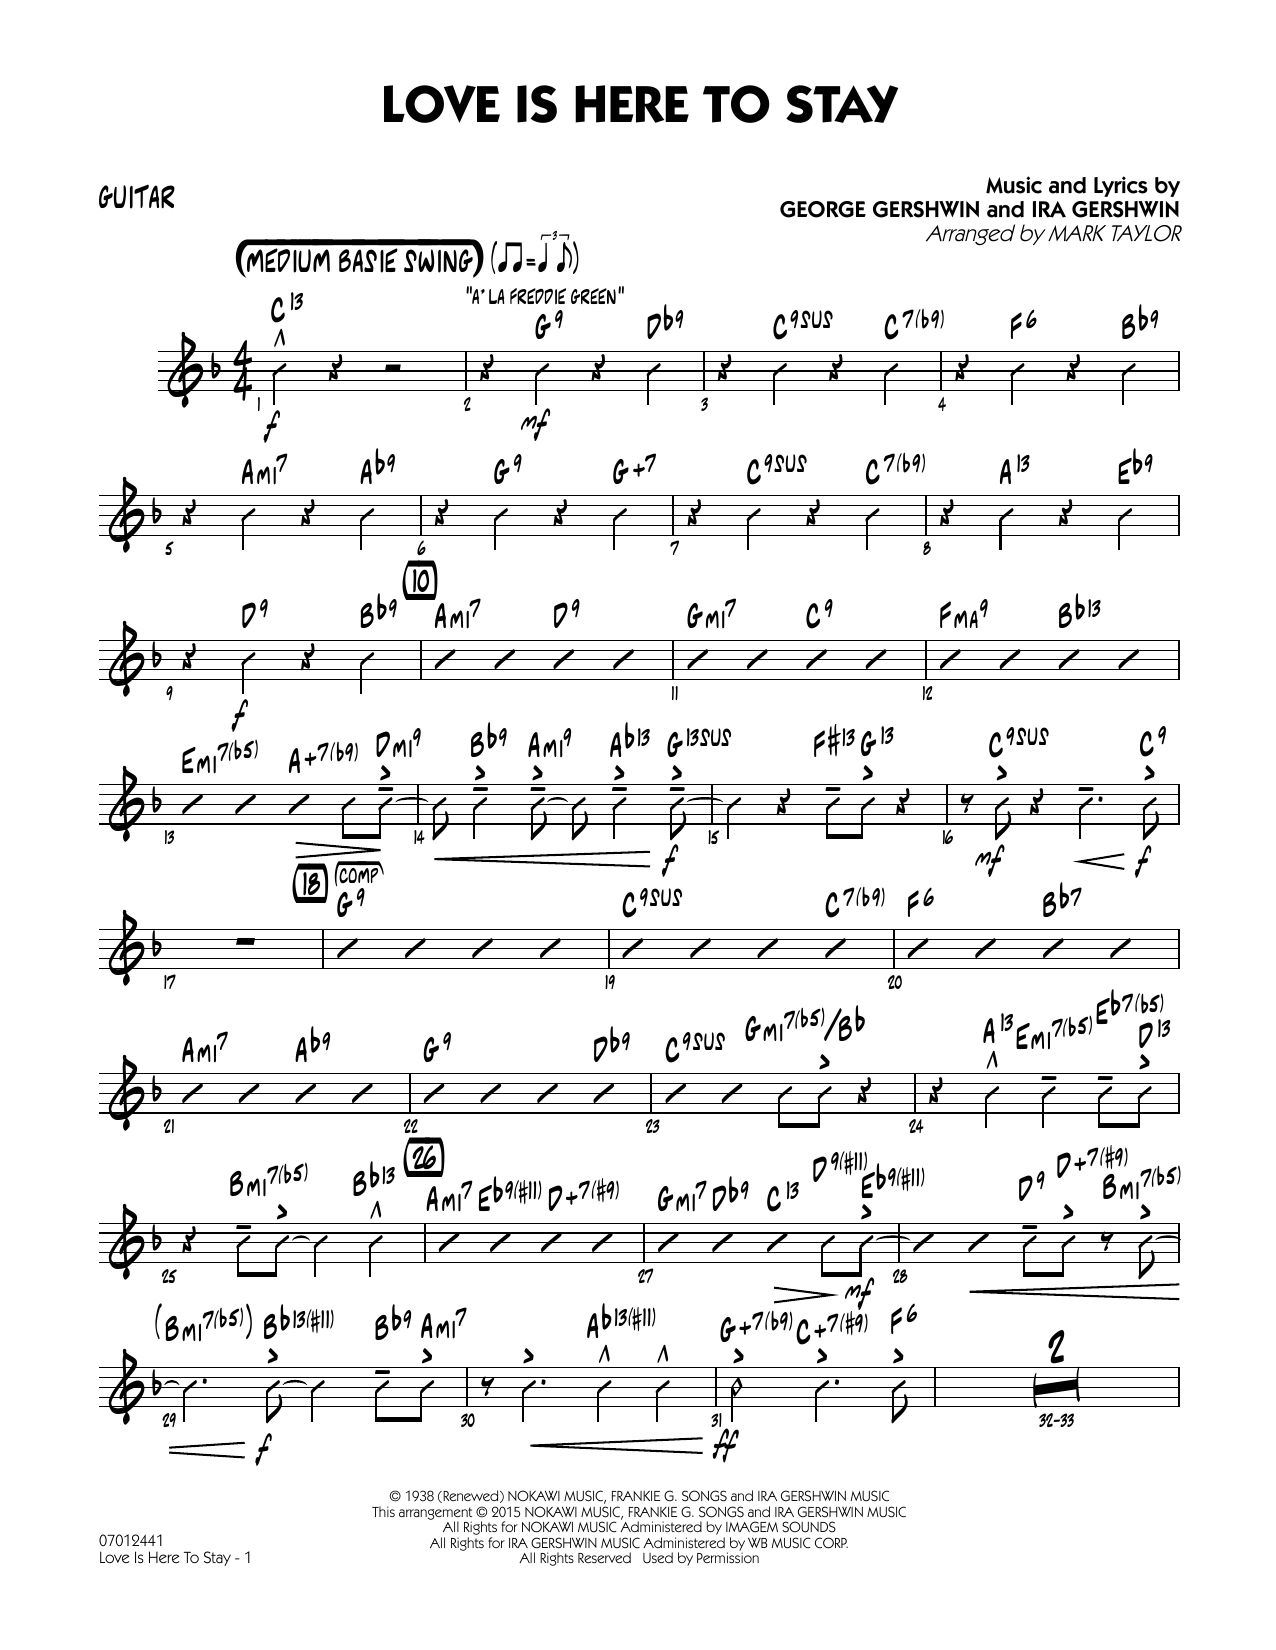 Love Is Here to Stay - Guitar (Jazz Ensemble)